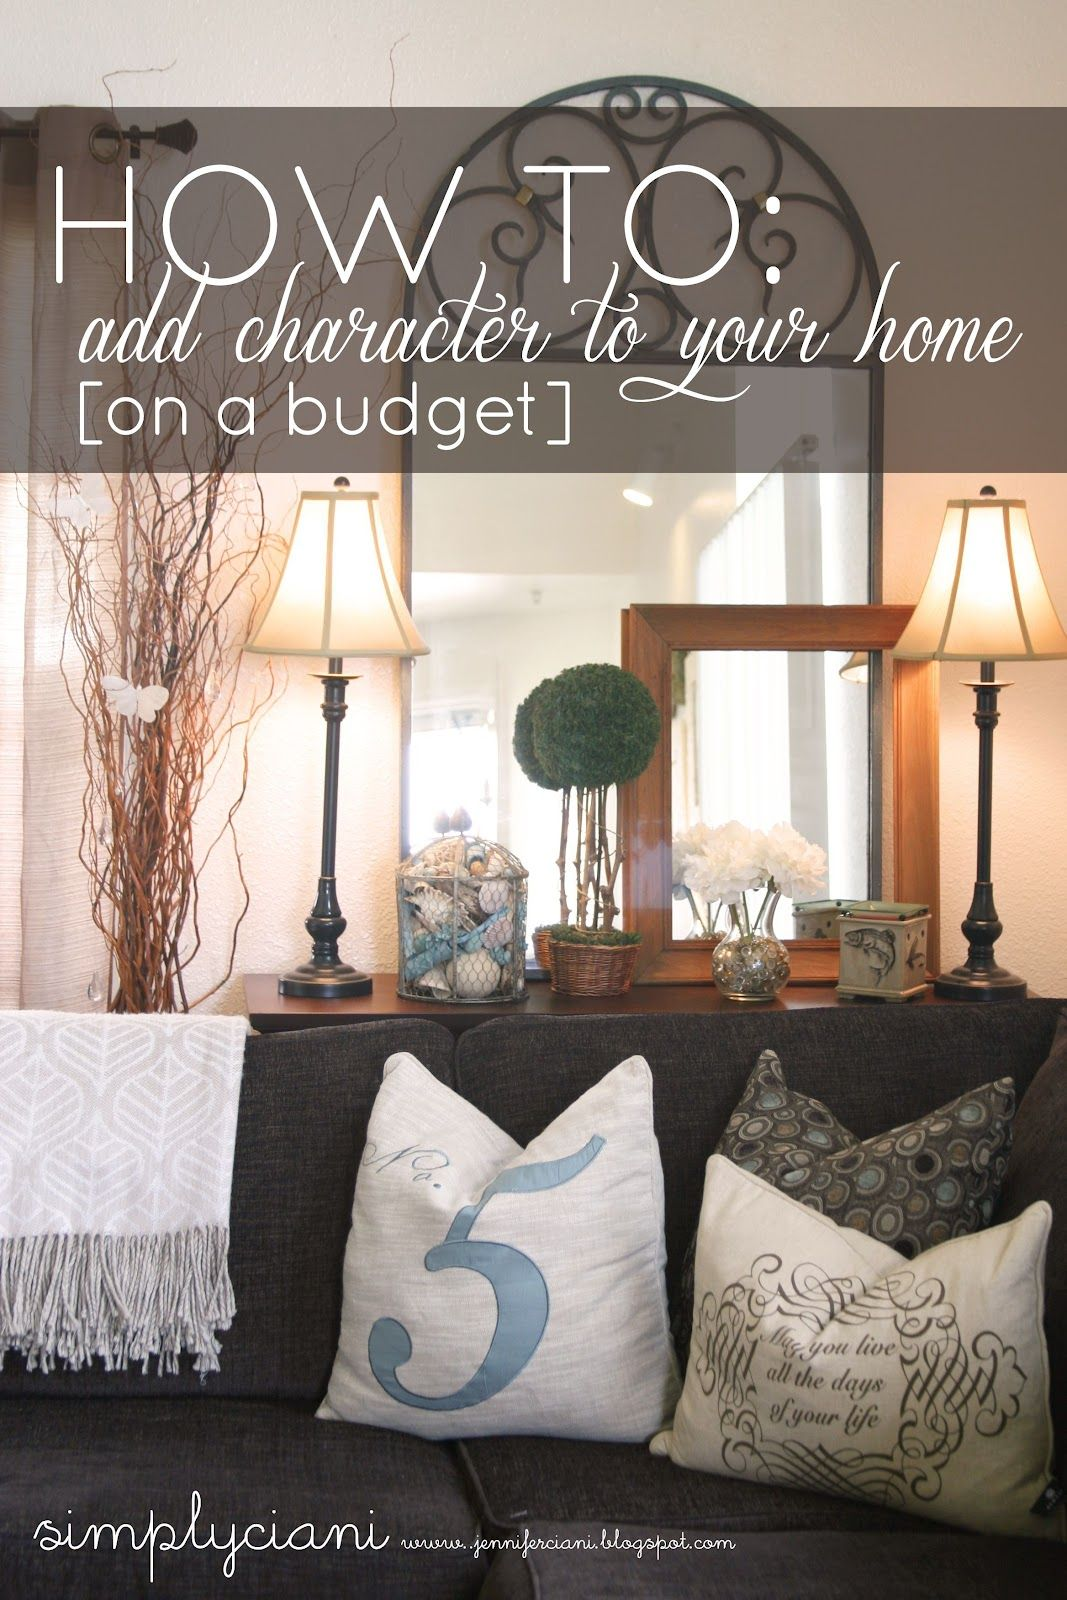 Simply Ciani: How to add character to your home (on a budget)~~